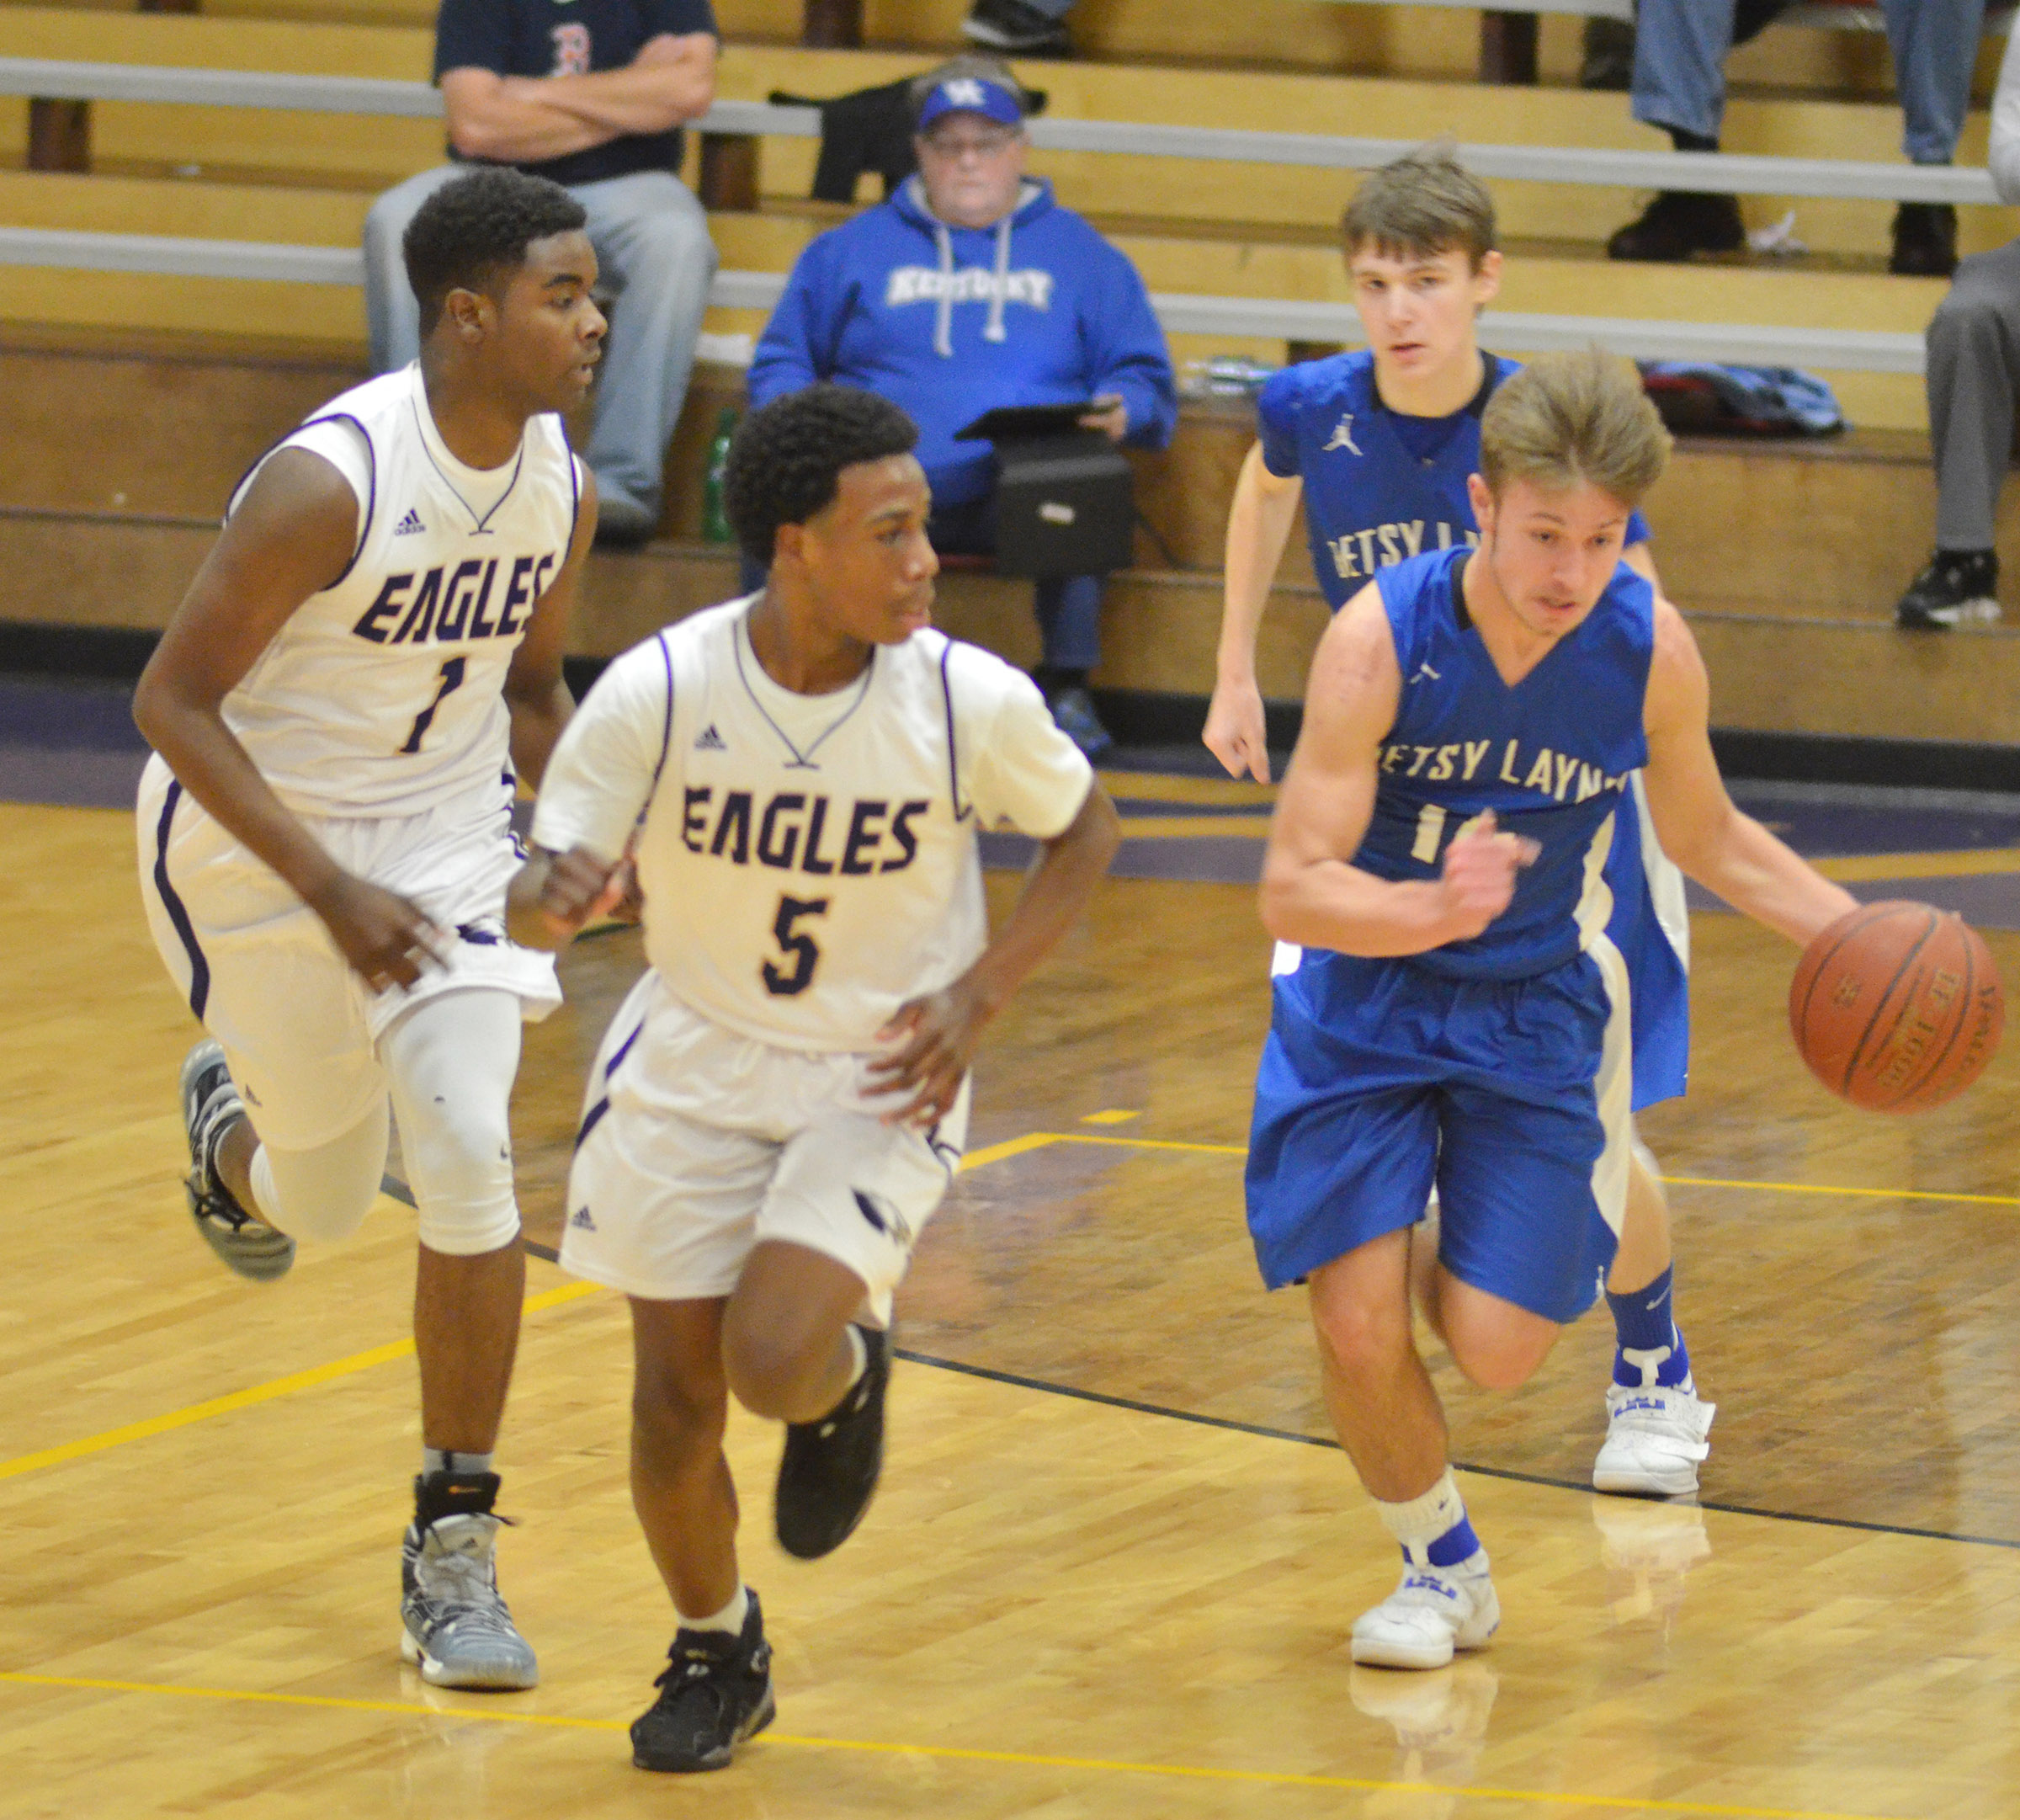 CHS junior Chanson Atkinson, at left, and freshman Malachi Corley play defense.